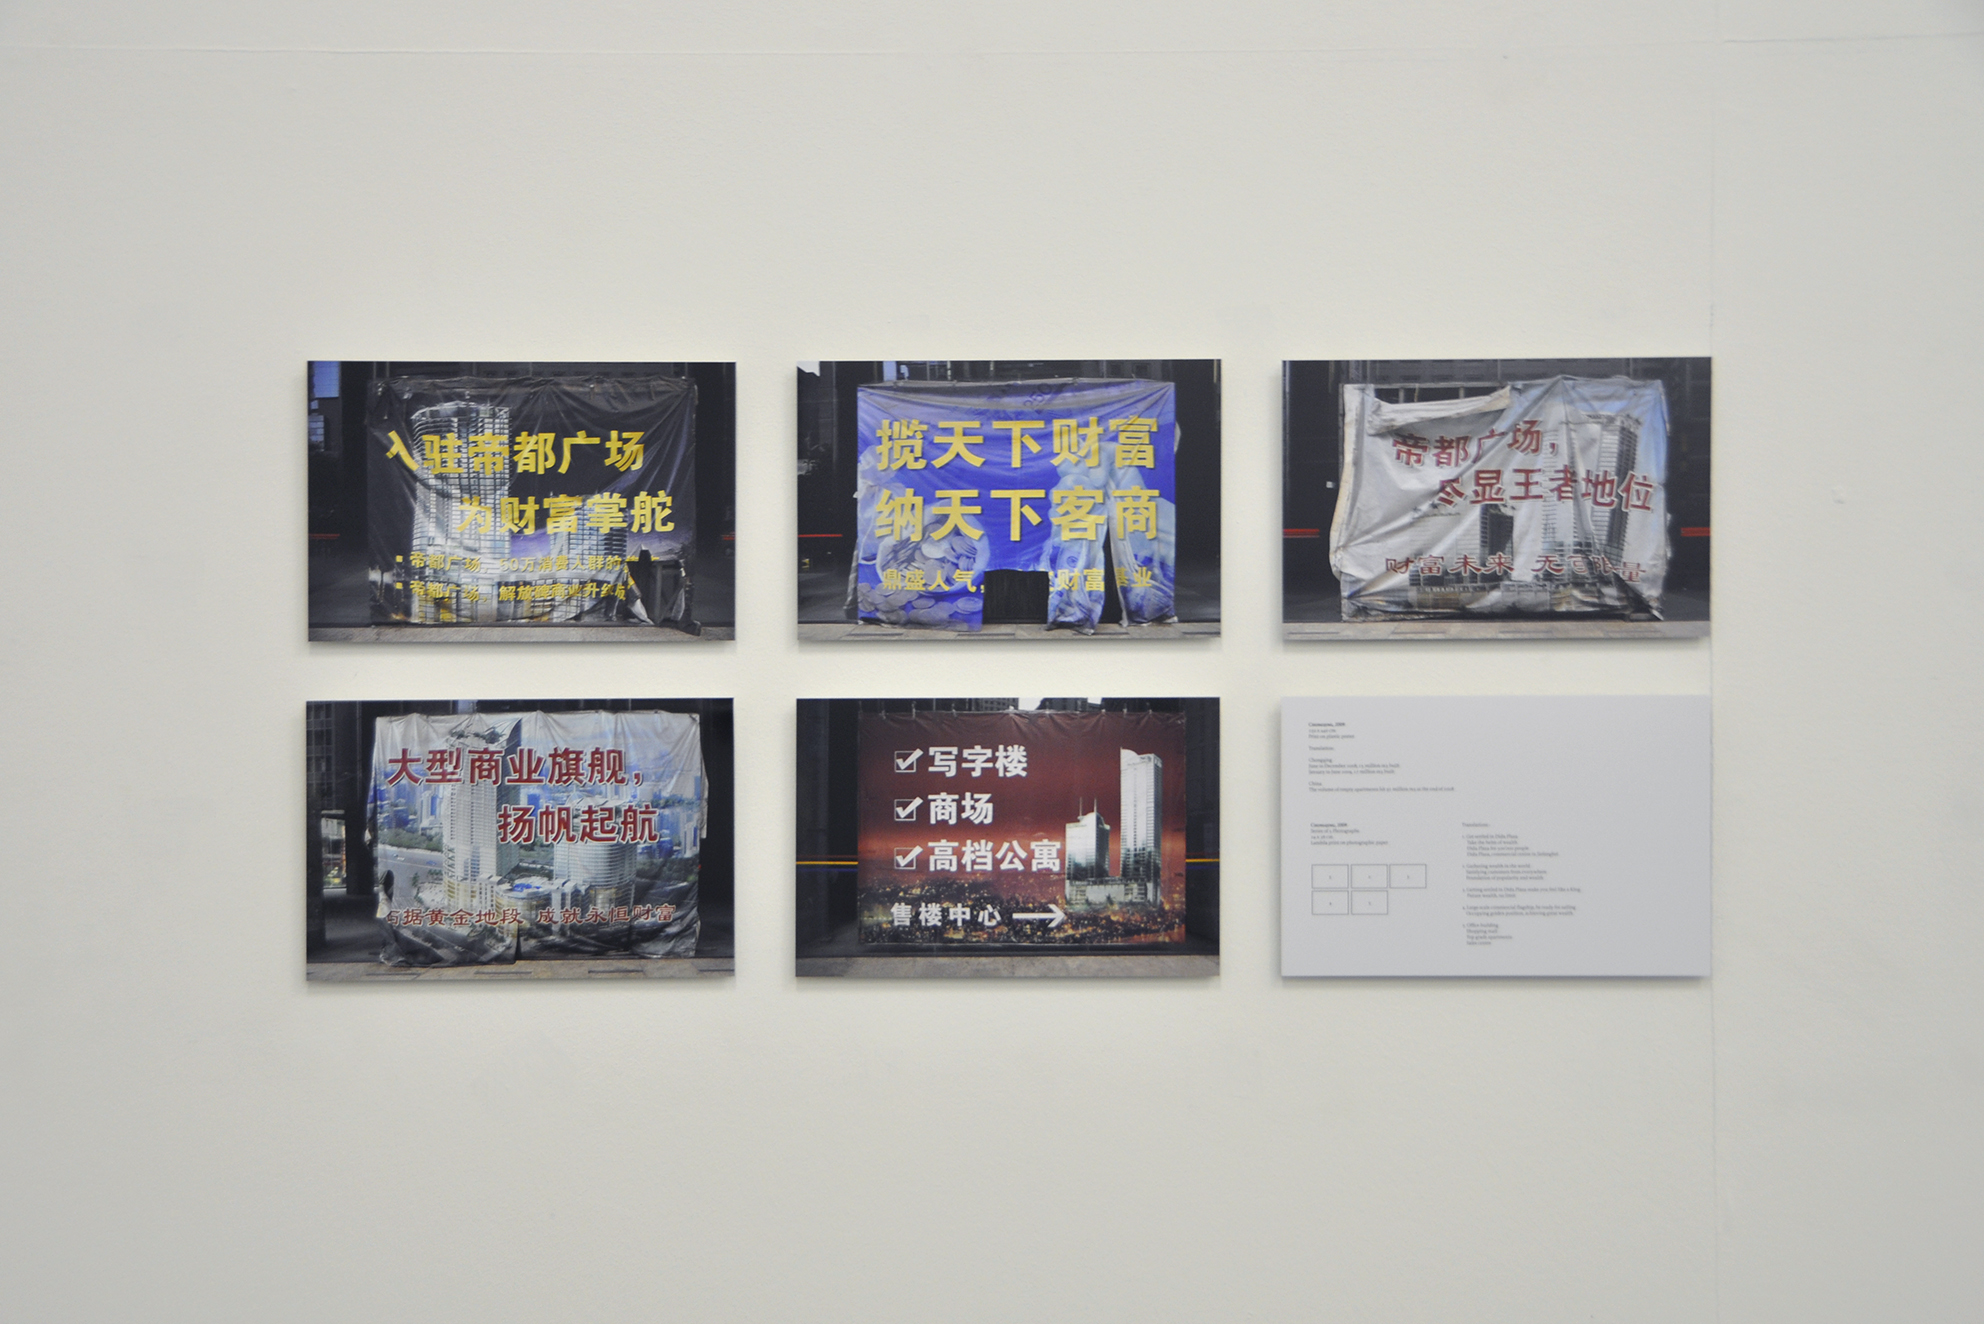 Chongqing, 5 documentary photographs, 24 x 36 cm, 2010, in collaboration with Swann Thommen